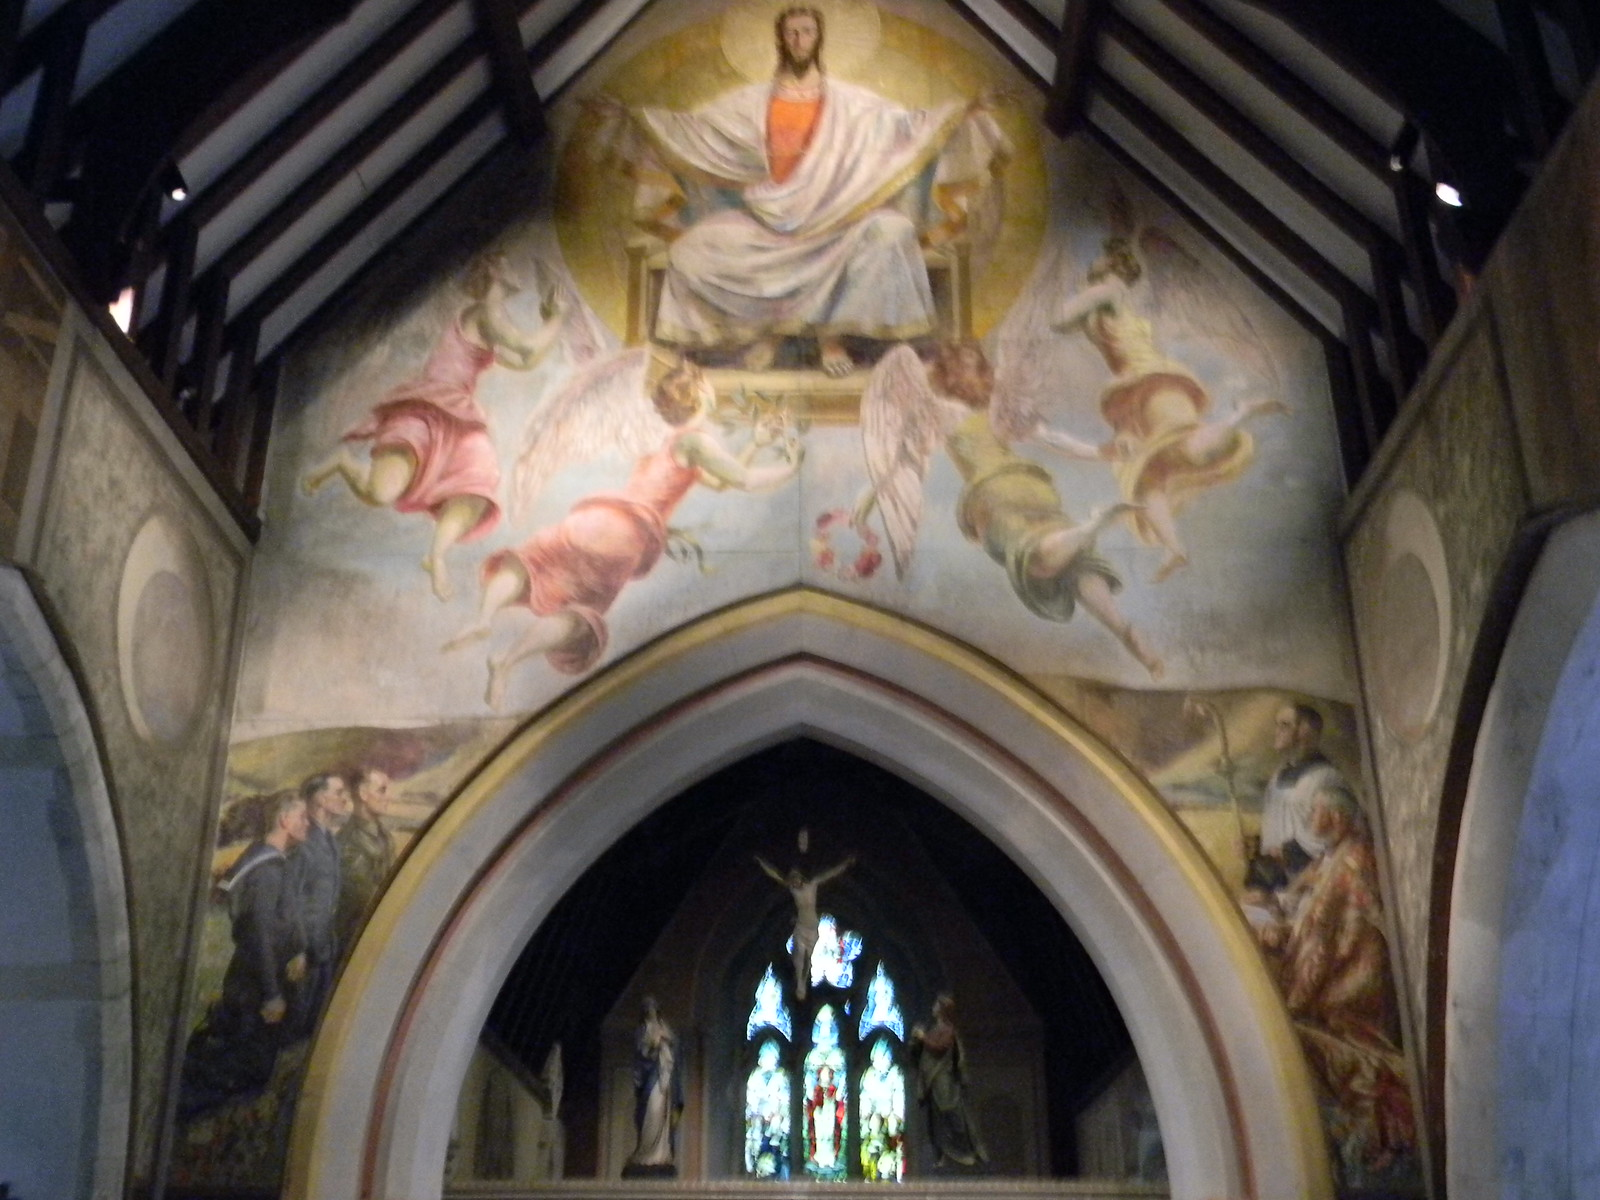 "Berwick Church mural www.berwickchurch.org.uk/page7.html"" rel=""nofollow www.berwickchurch.org.uk/page7.html Lewes to Berwick"